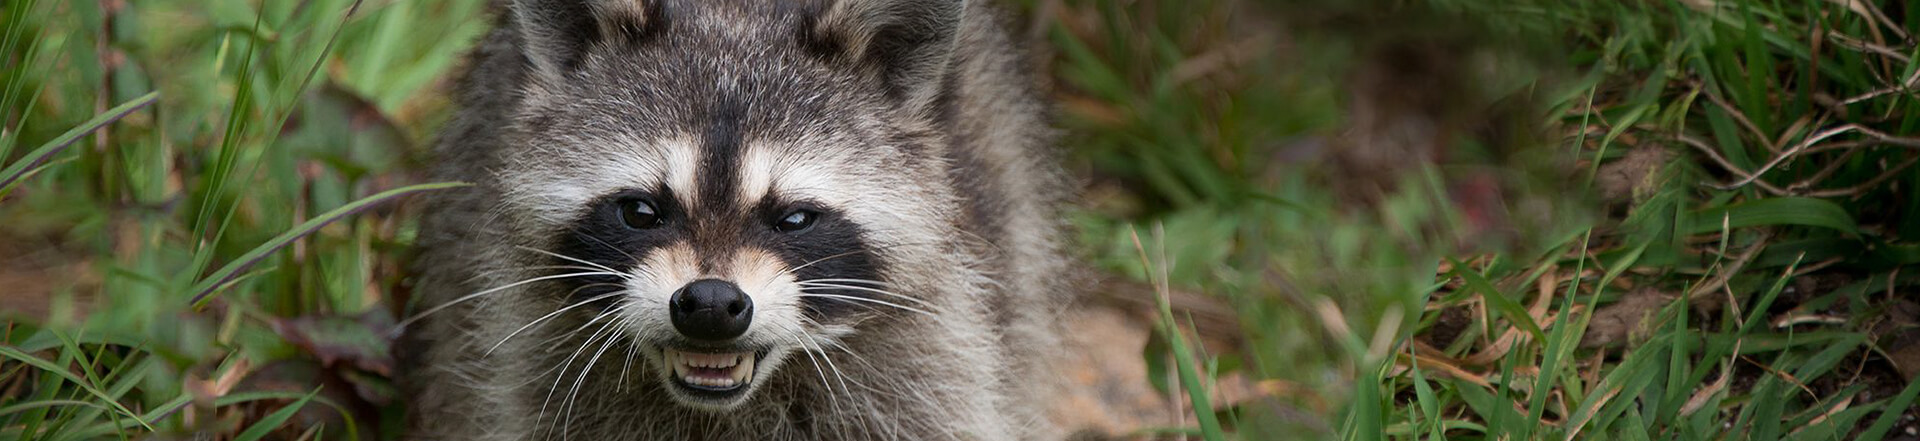 Raccoon Control Services Vancouver, Surrey and Burnaby